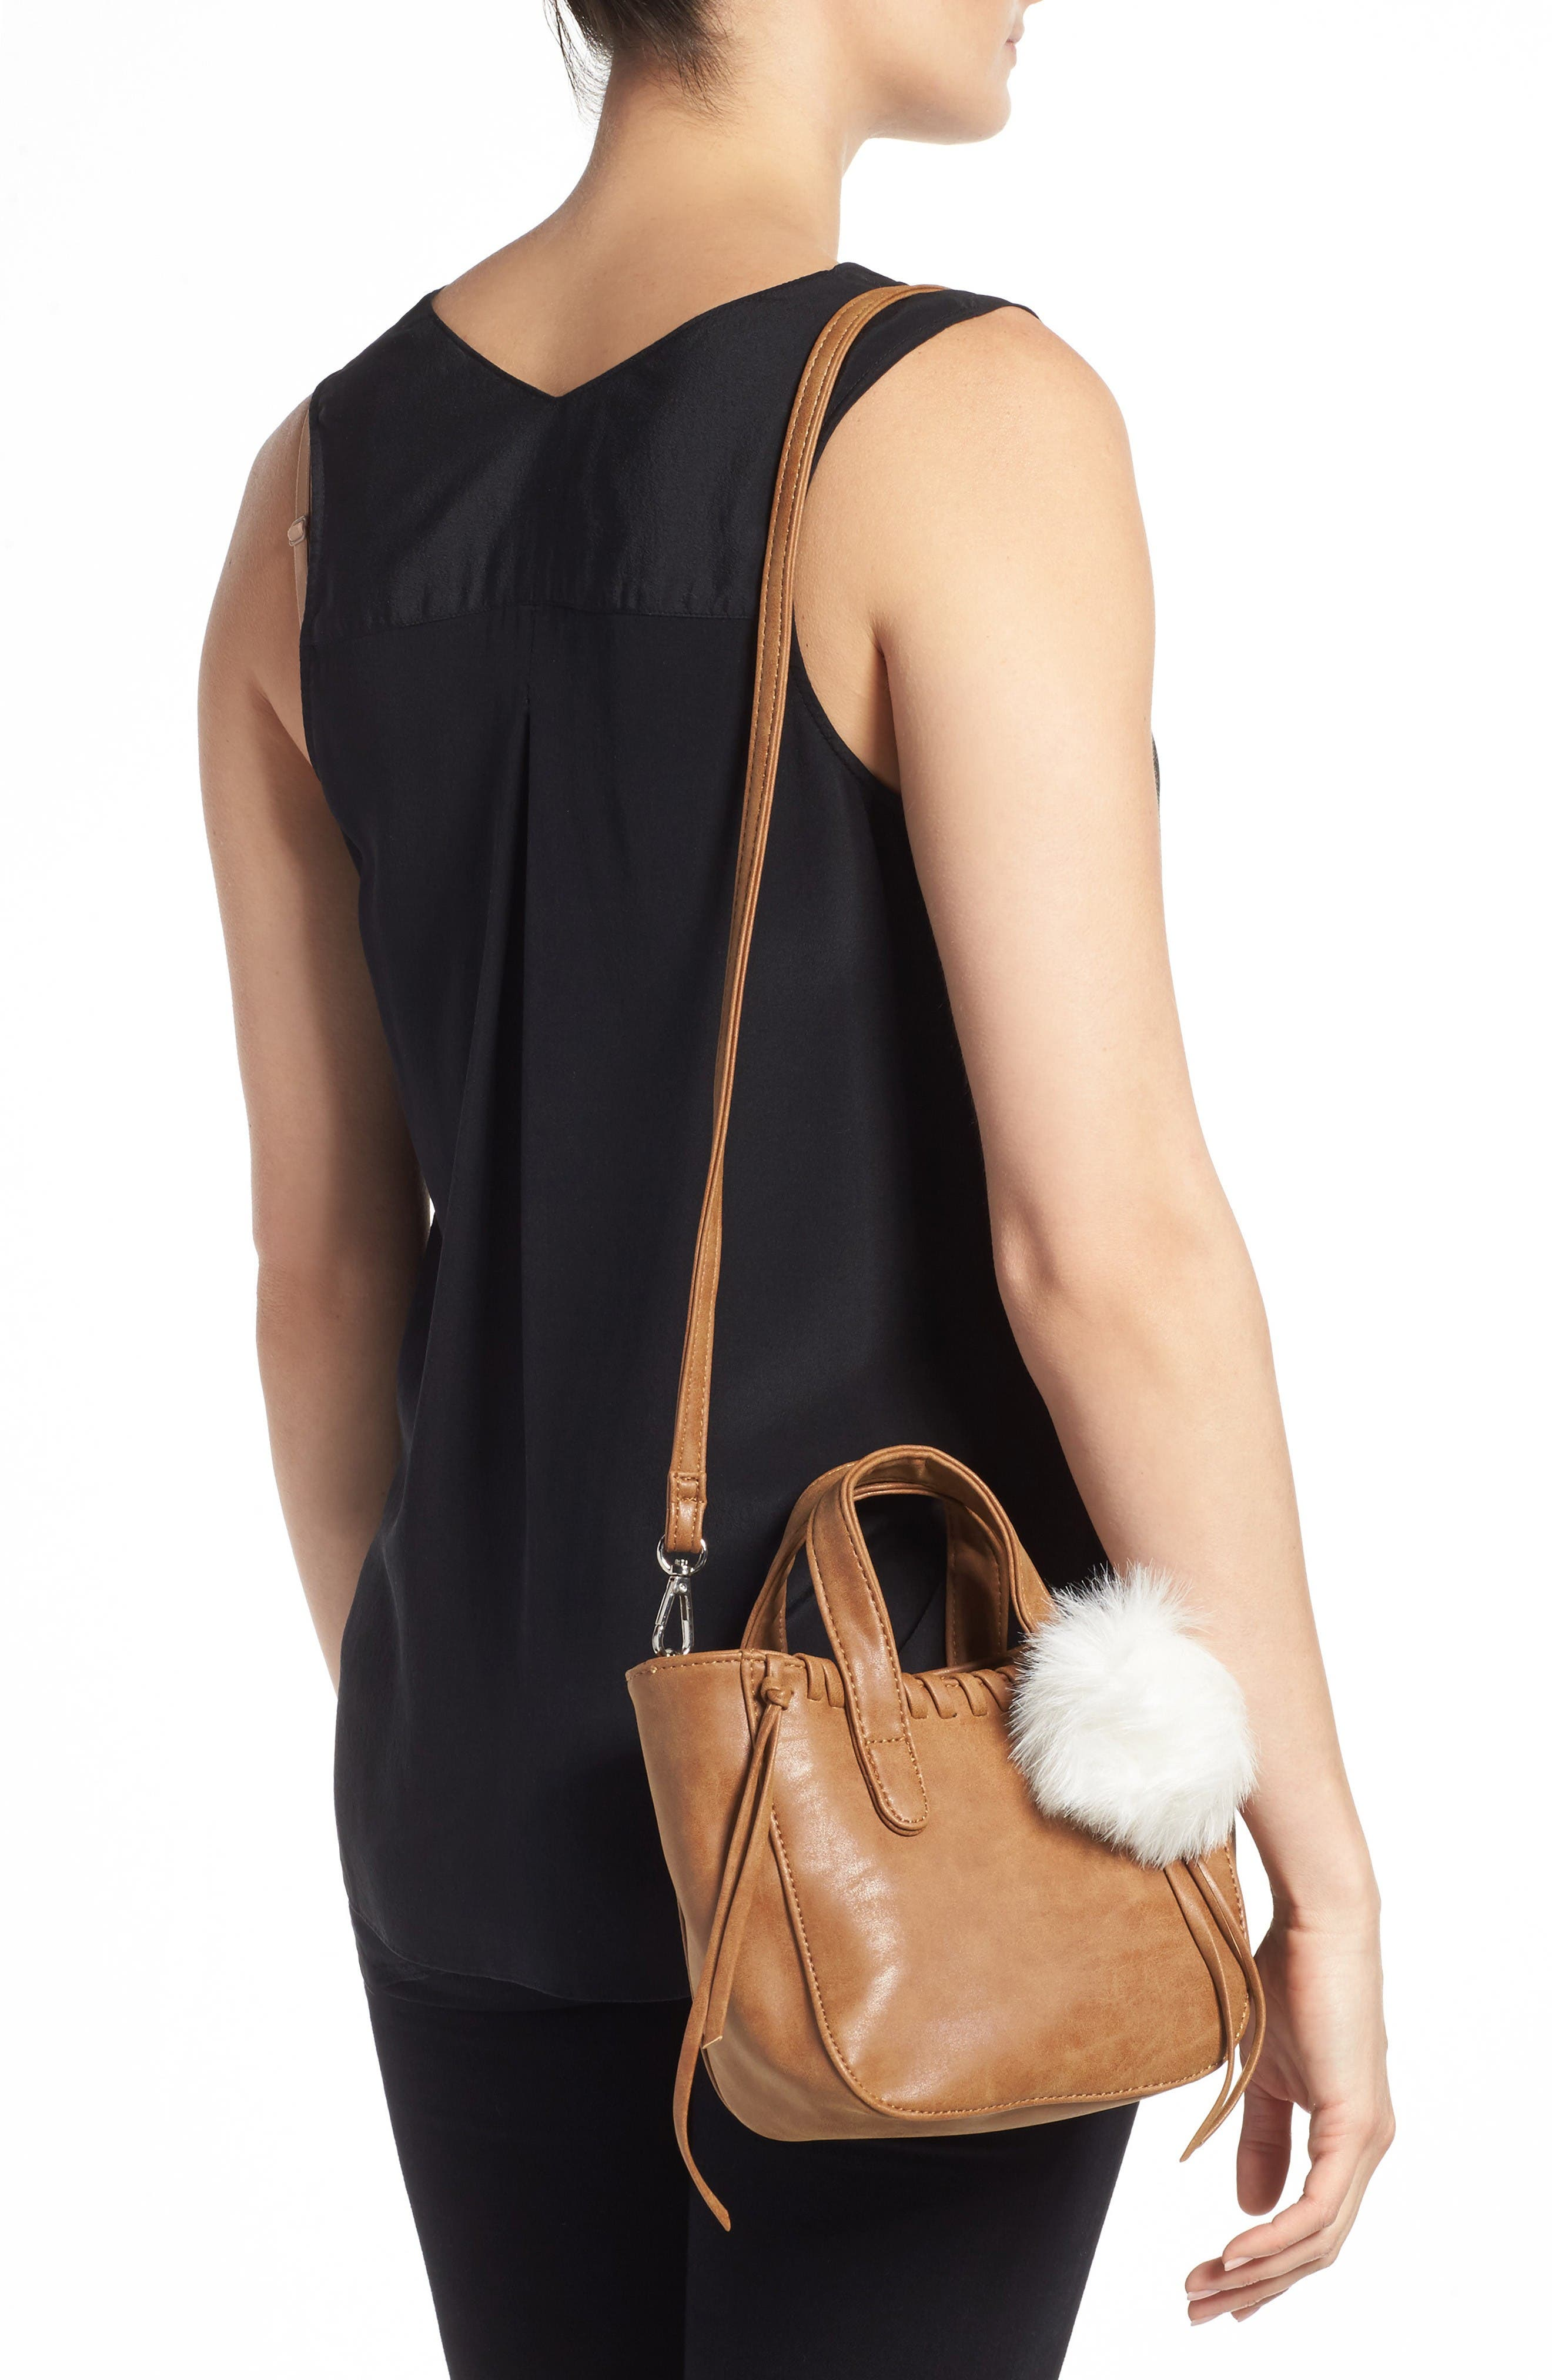 Alternate Image 2  - OMG Faux Leather Shoulder Bag with Faux Fur Bag Charm (Special Purchase)